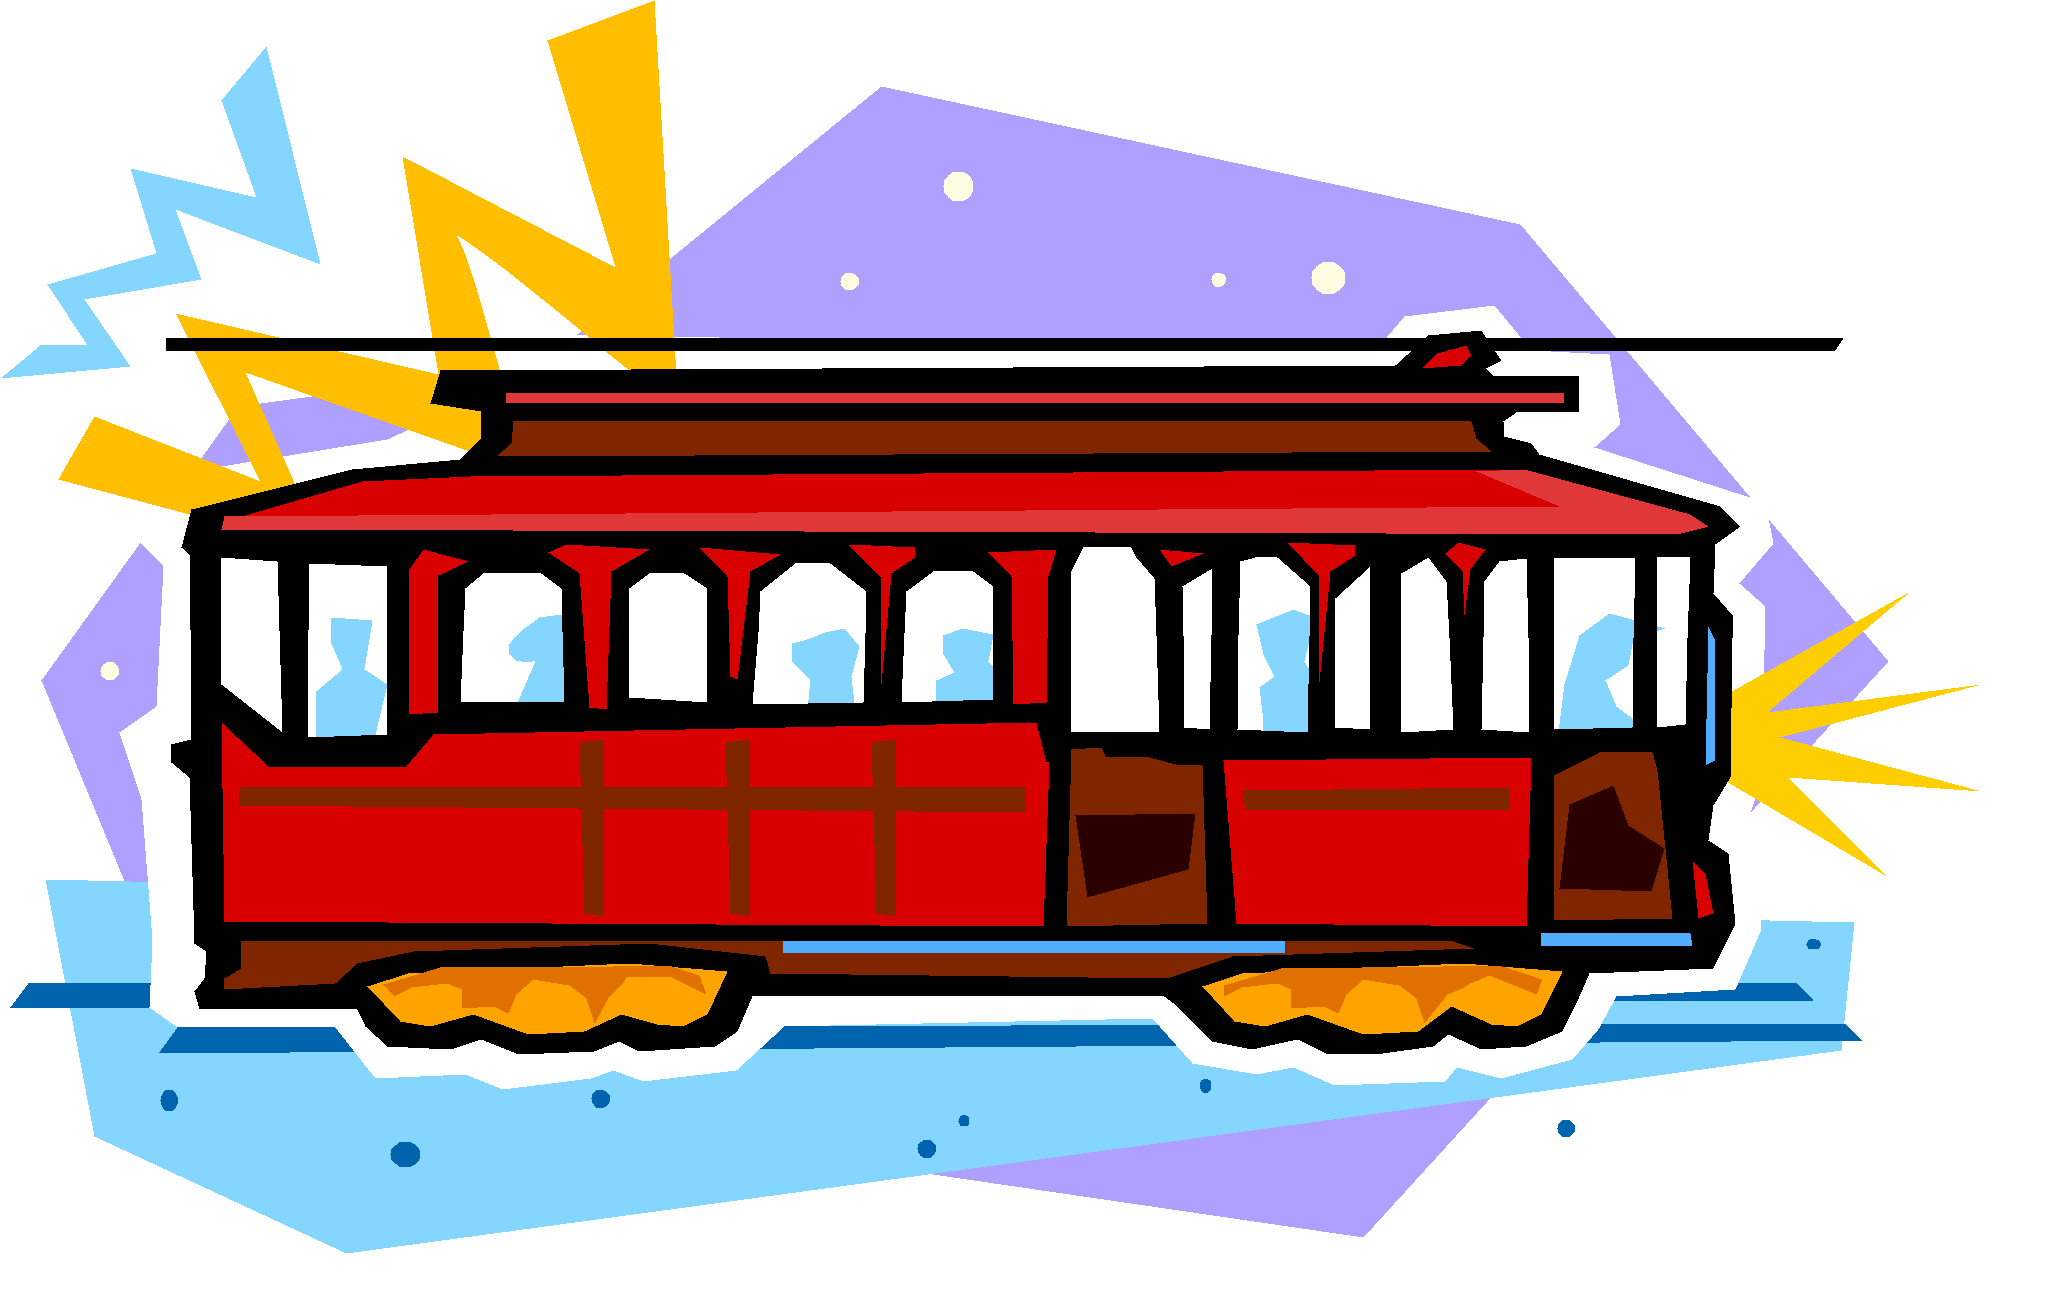 Cable car clipart image free Presentation Name on emaze image free